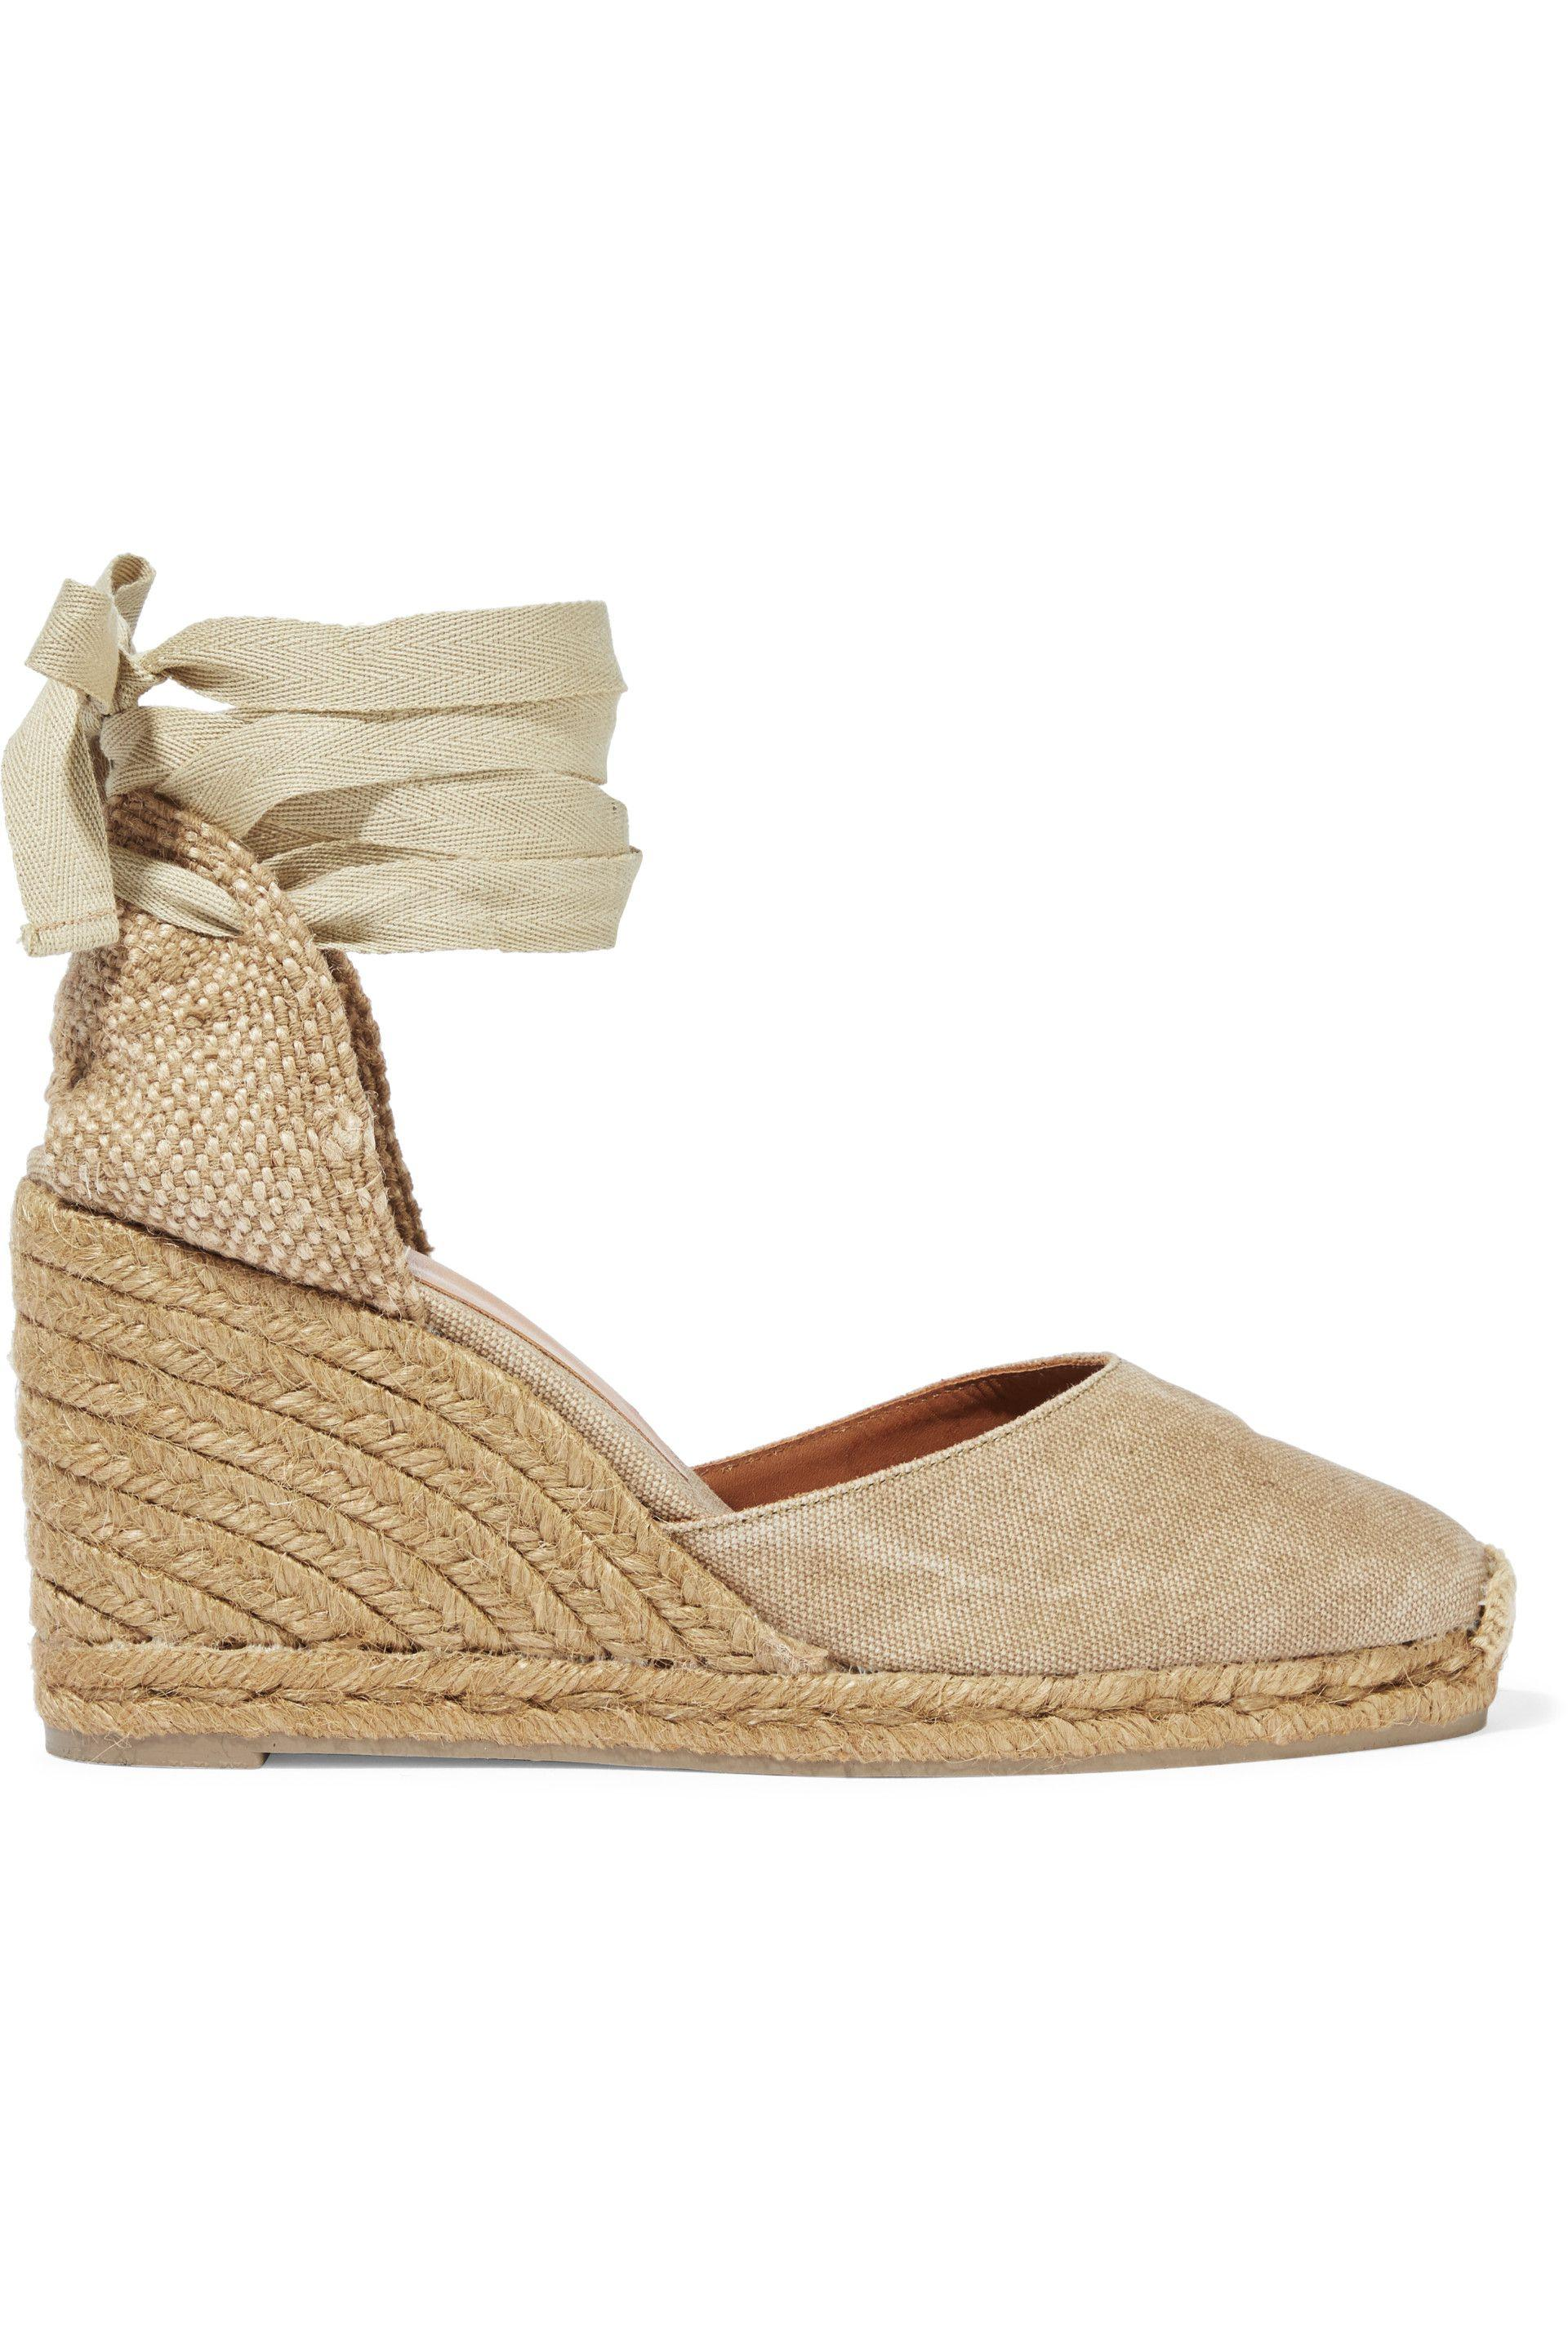 bb9fd863d2a Castaner - Natural Castañer Woman Carina 80 Canvas Wedge Espadrilles  Mushroom - Lyst